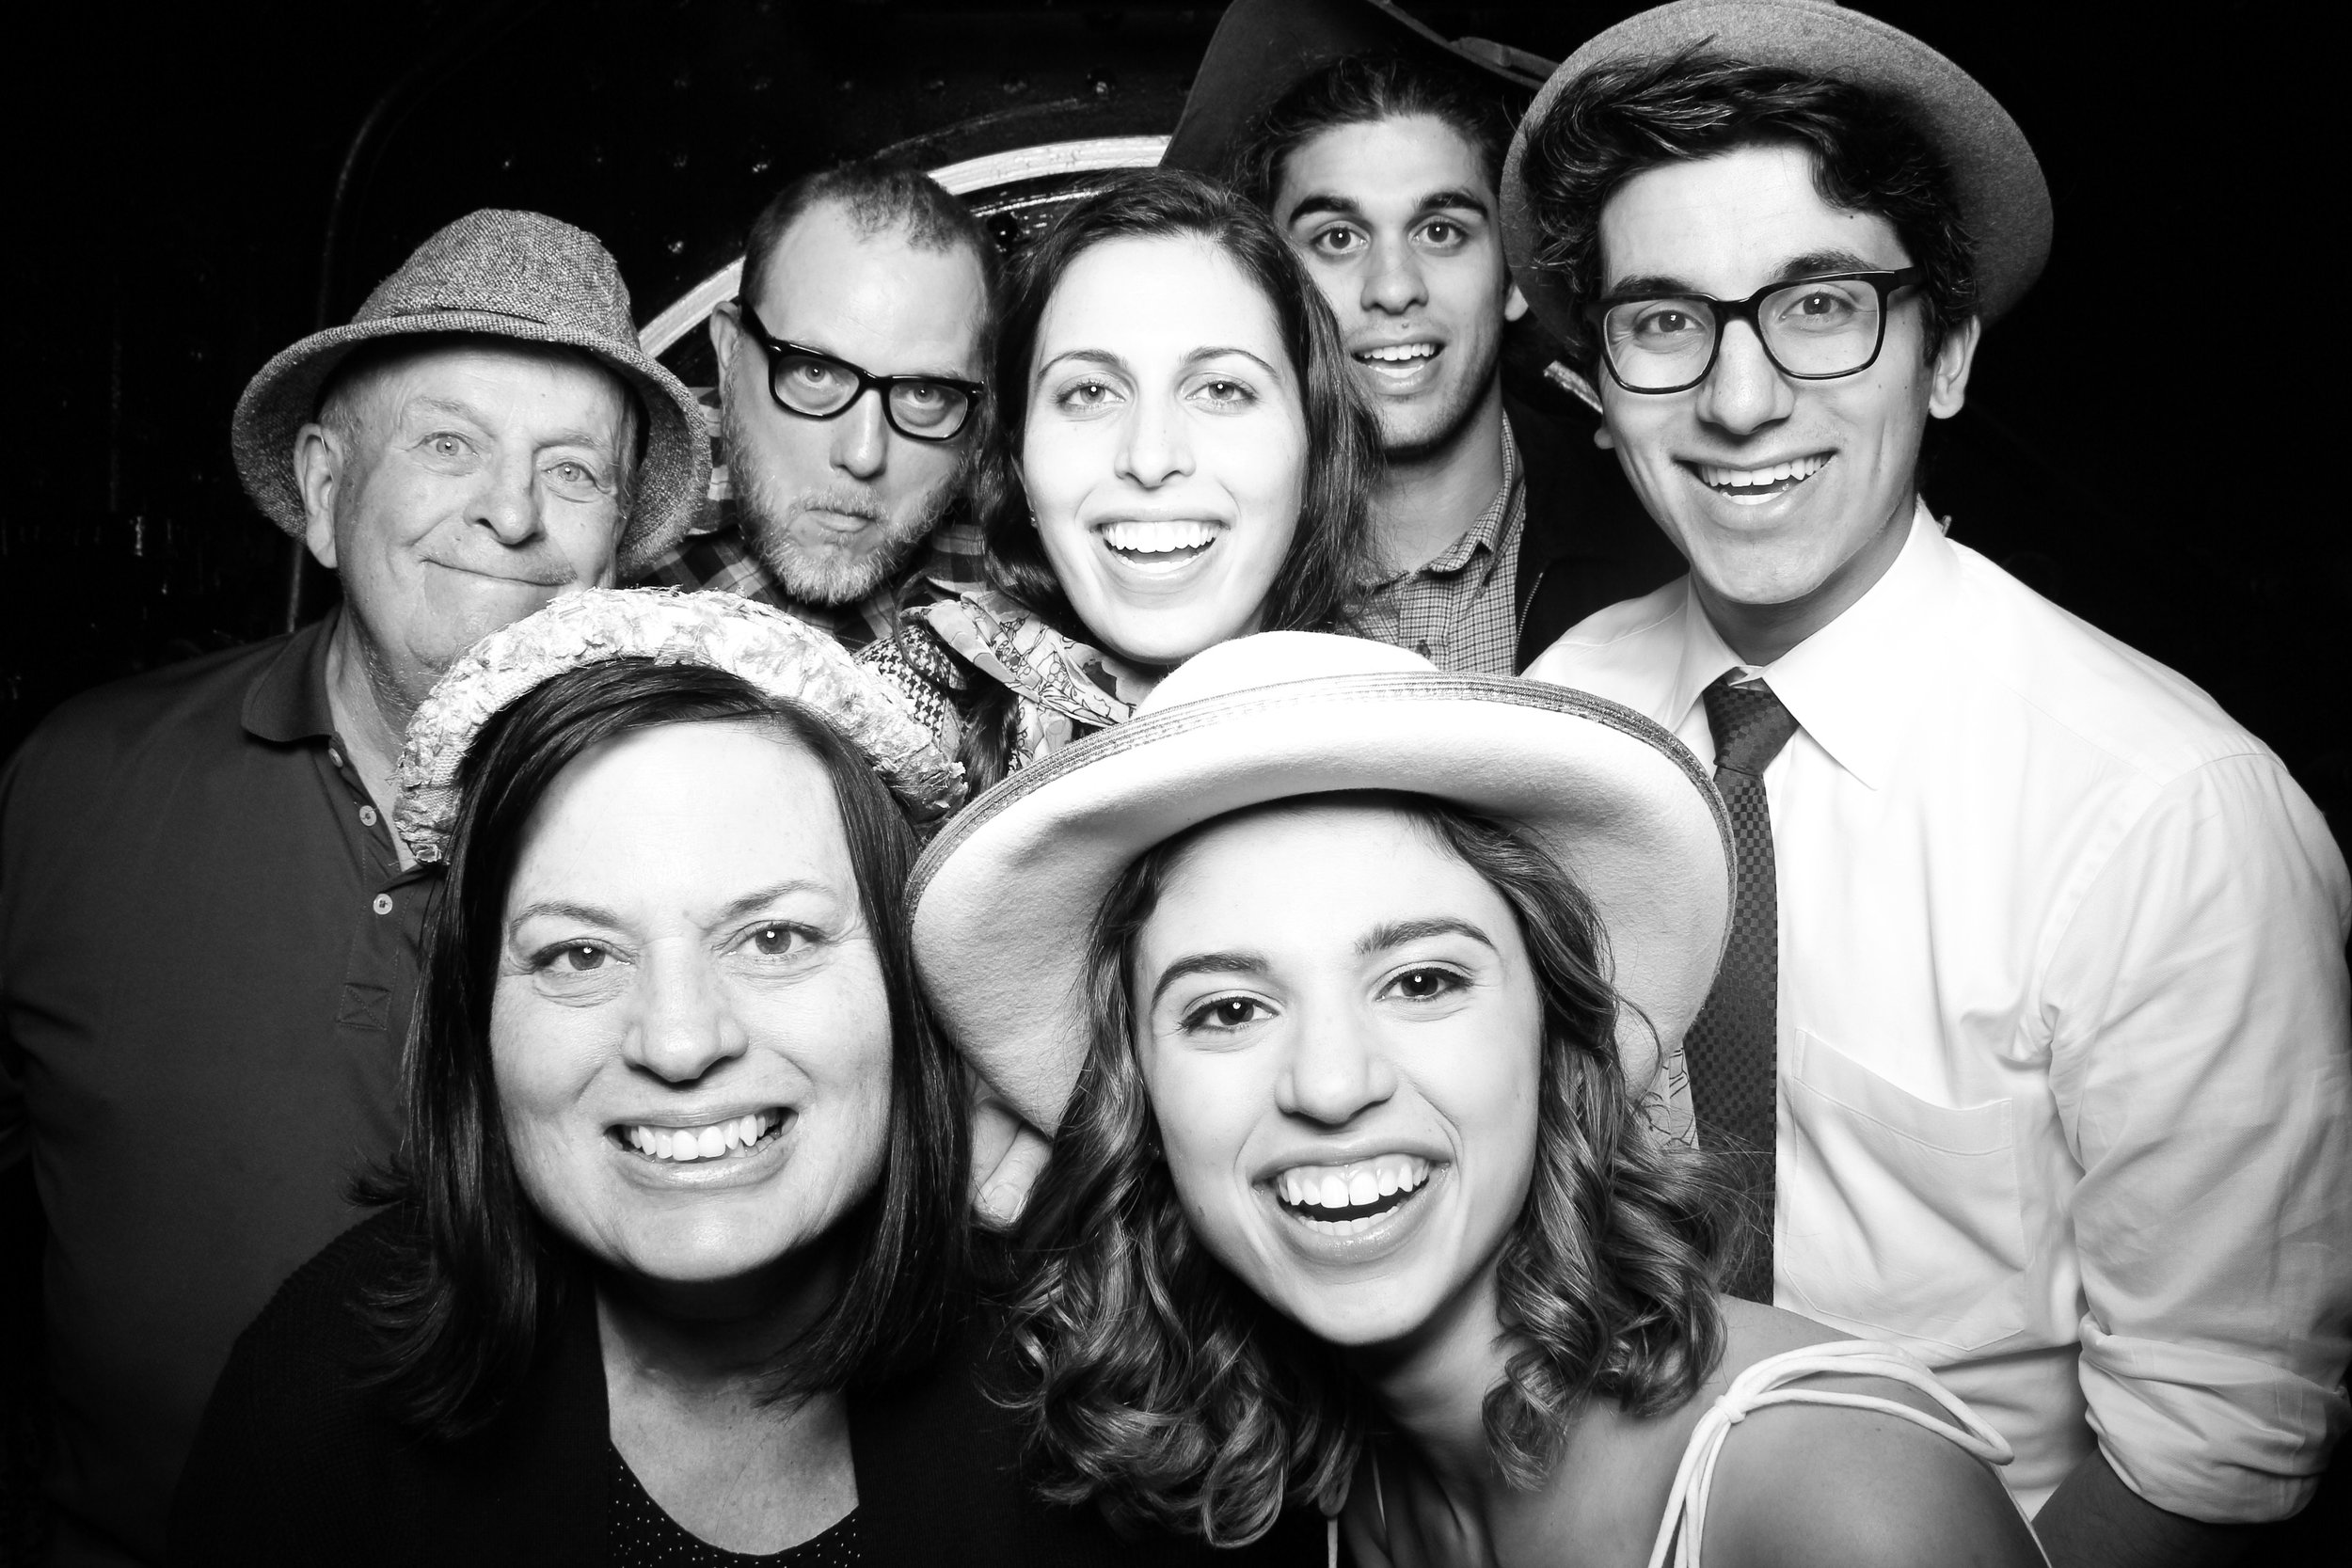 Chicago_Vintage_Wedding_Photobooth_Hyde_Park_19.jpg